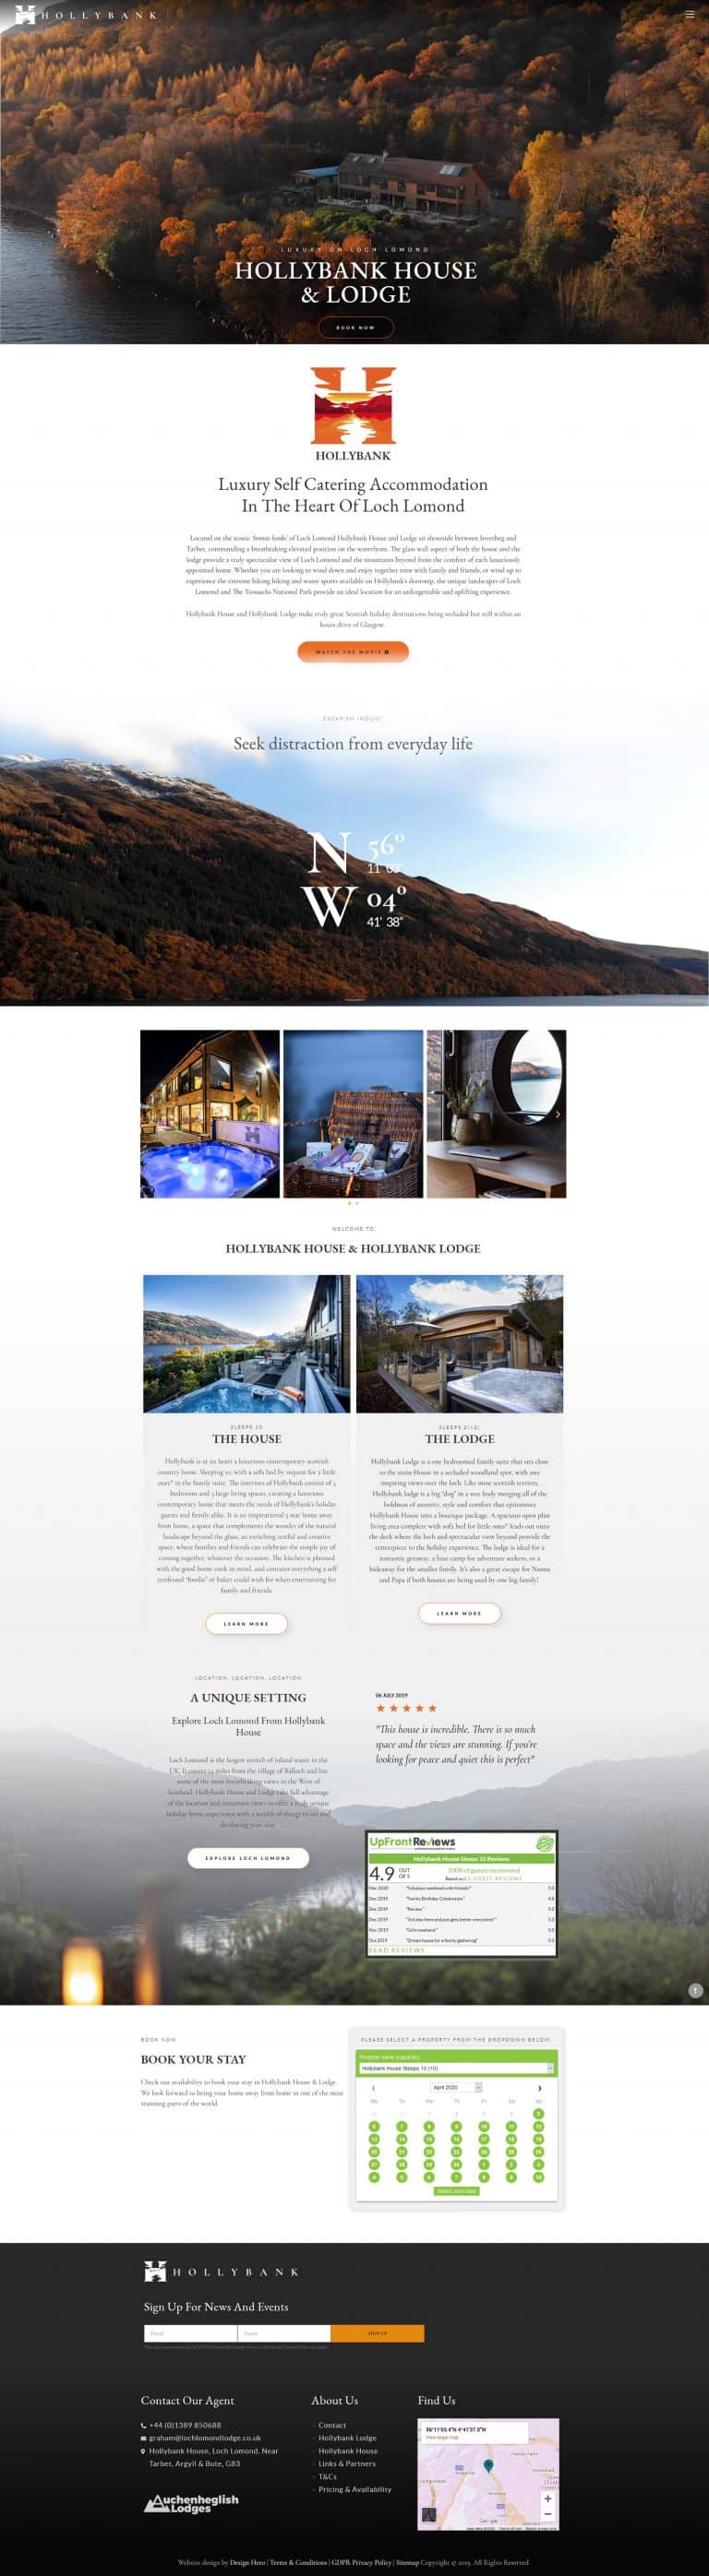 design of booking website for self catering accommodation and holiday cottages